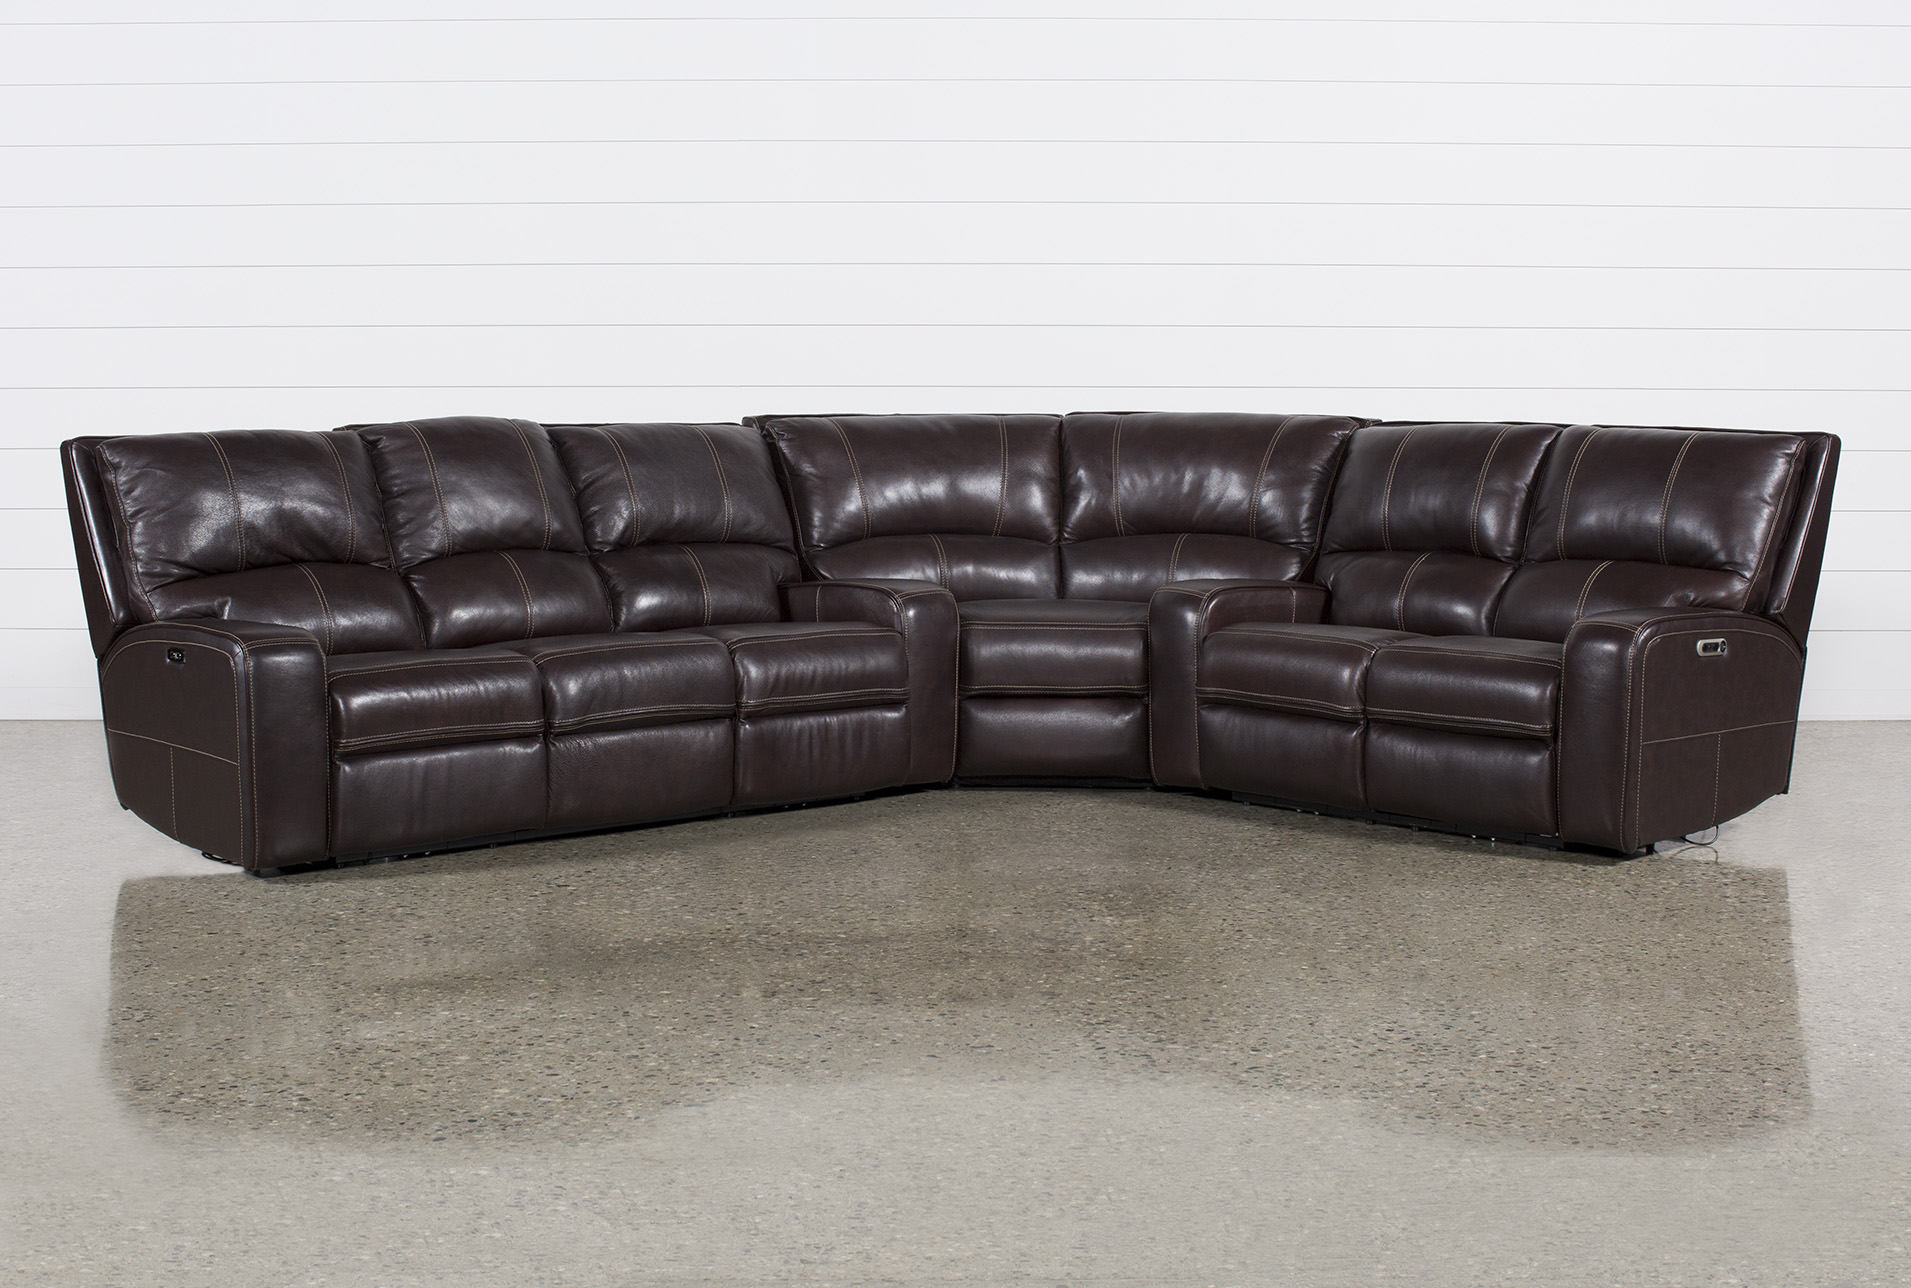 Sofa Relax Con Usb Clyde Dark Brown 3 Piece Power Reclining Sectional W Pwr Hdt Usb